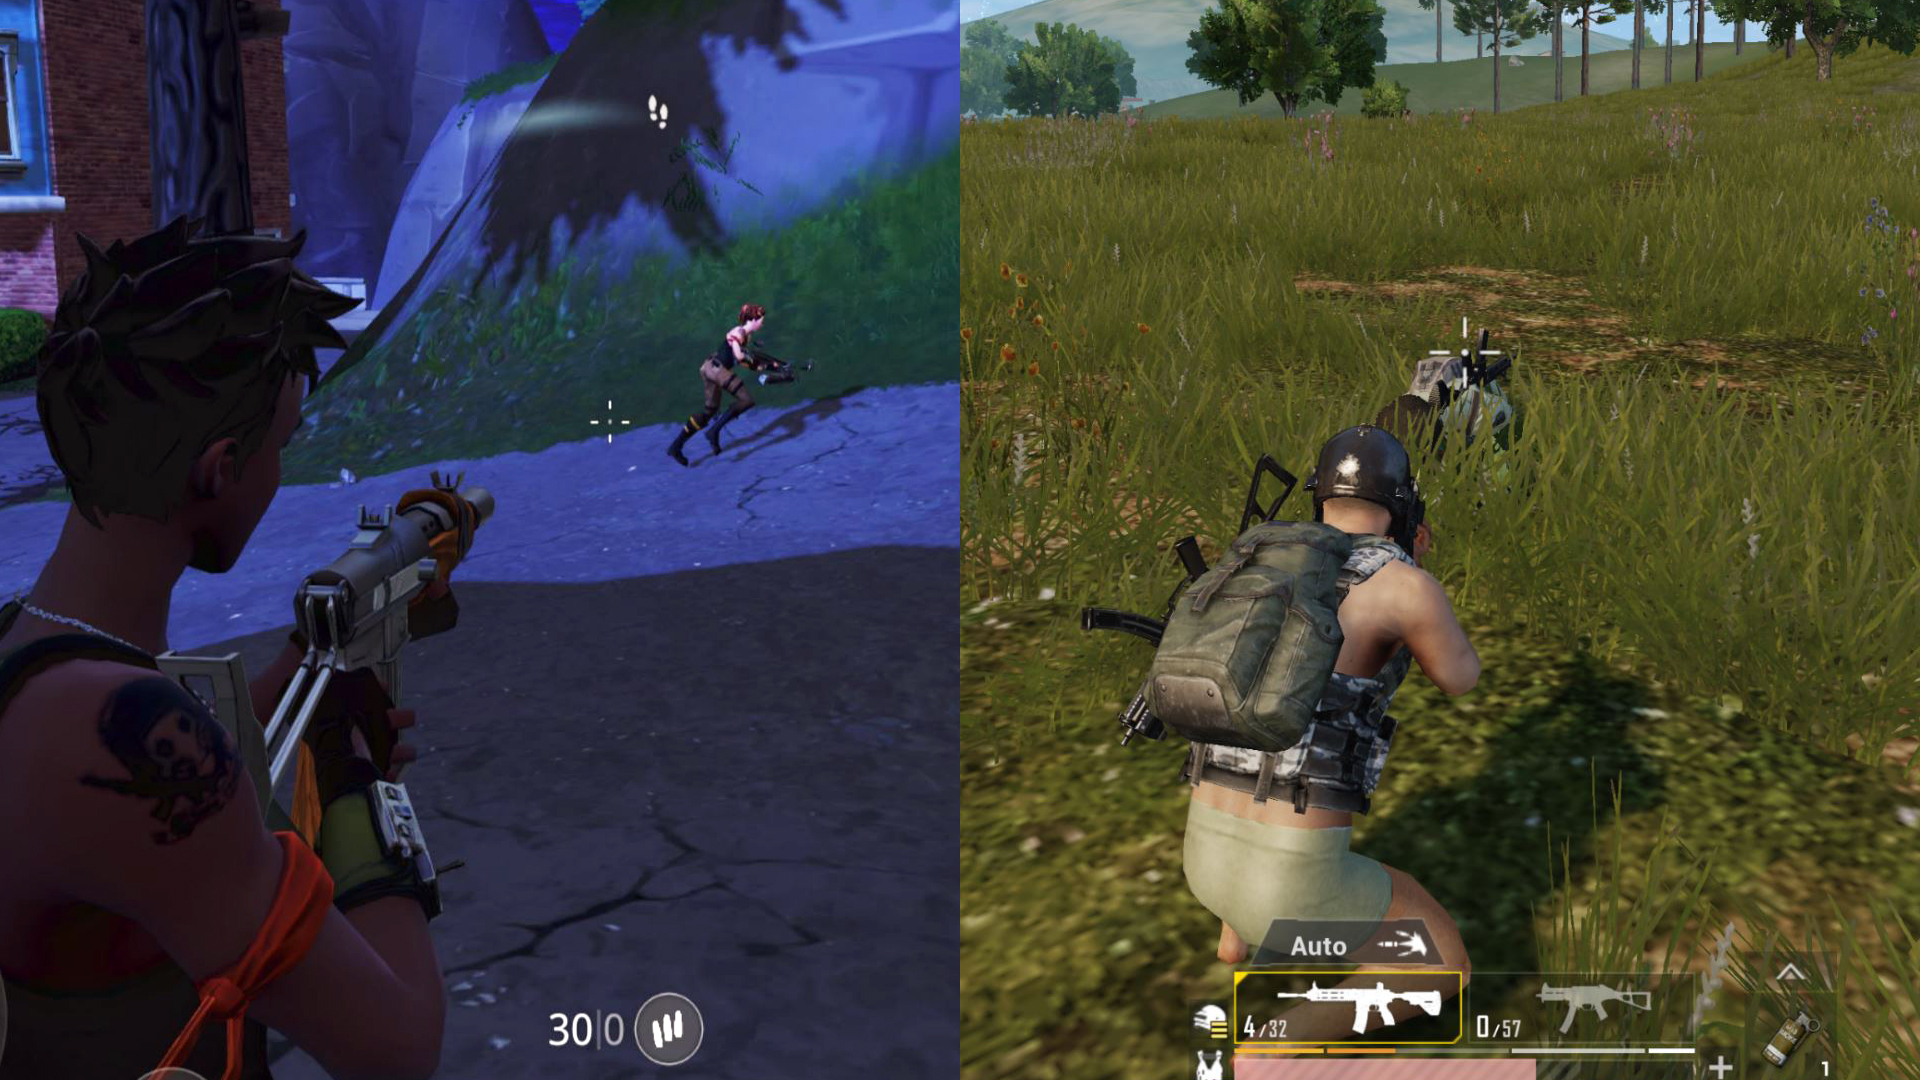 PUBG Mobile vs Fortnite Mobile - which portable battle royale is